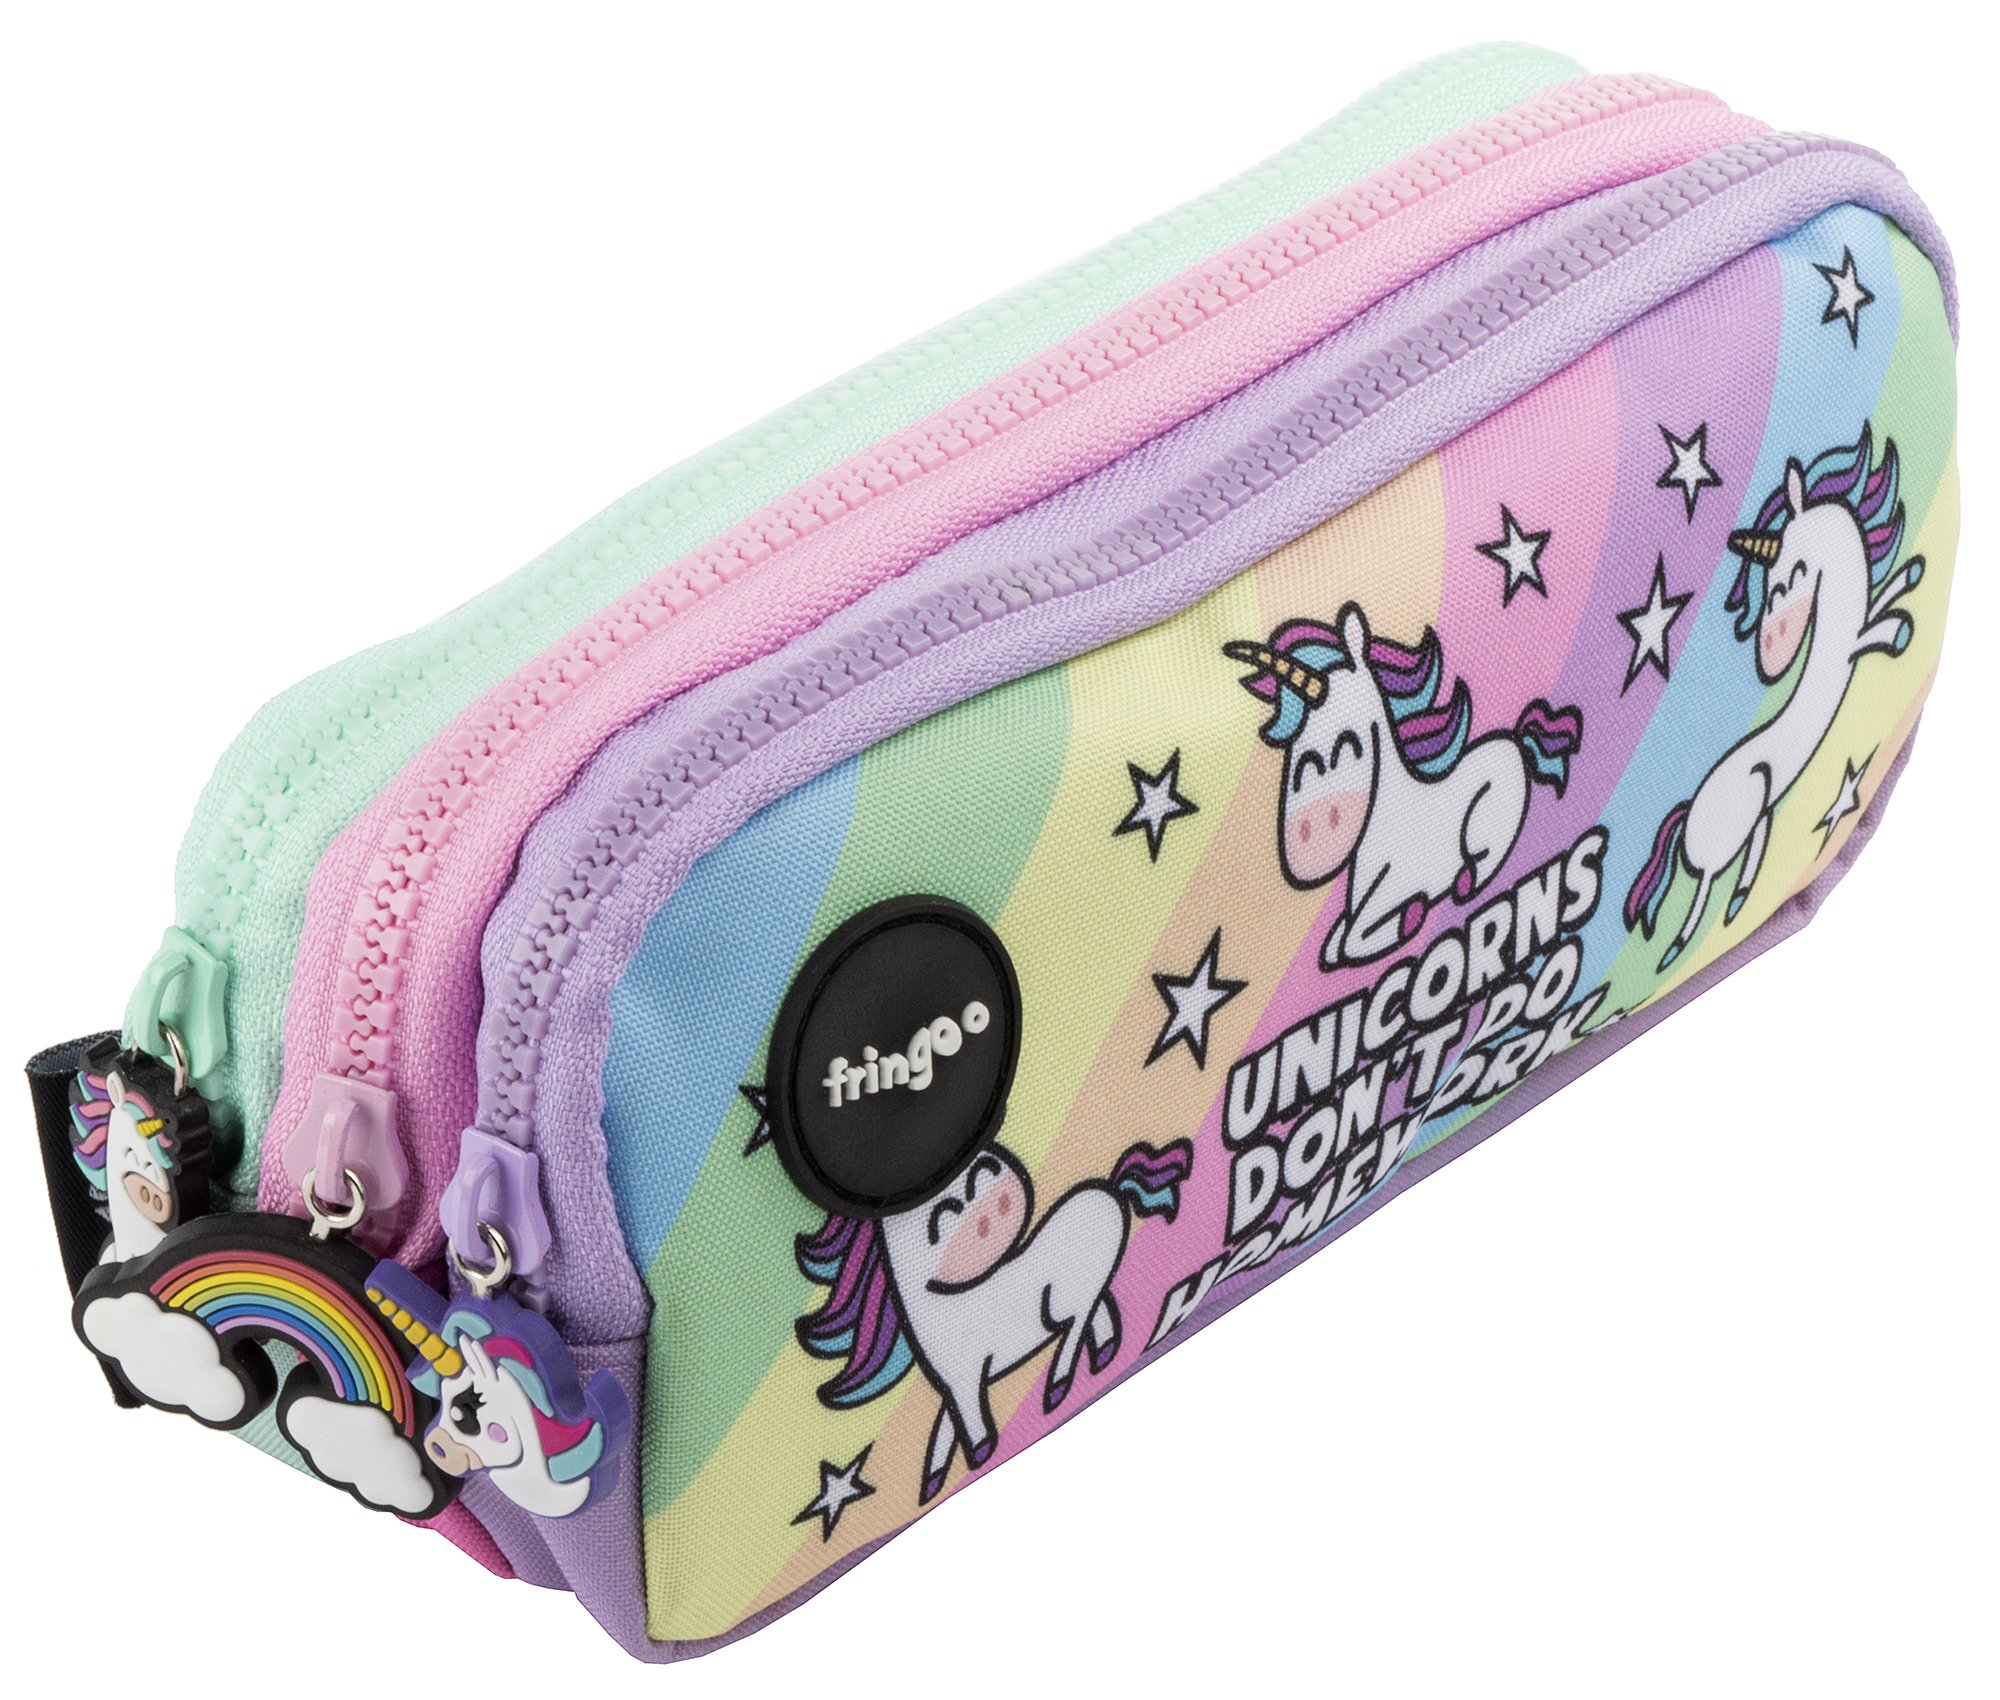 Estuche para lápices de 3 compartimentos FRINGOO, para niños, divertido y bonito, color Unicorns & Homework - 3 Compartments Large: Amazon.es: Oficina y papelería